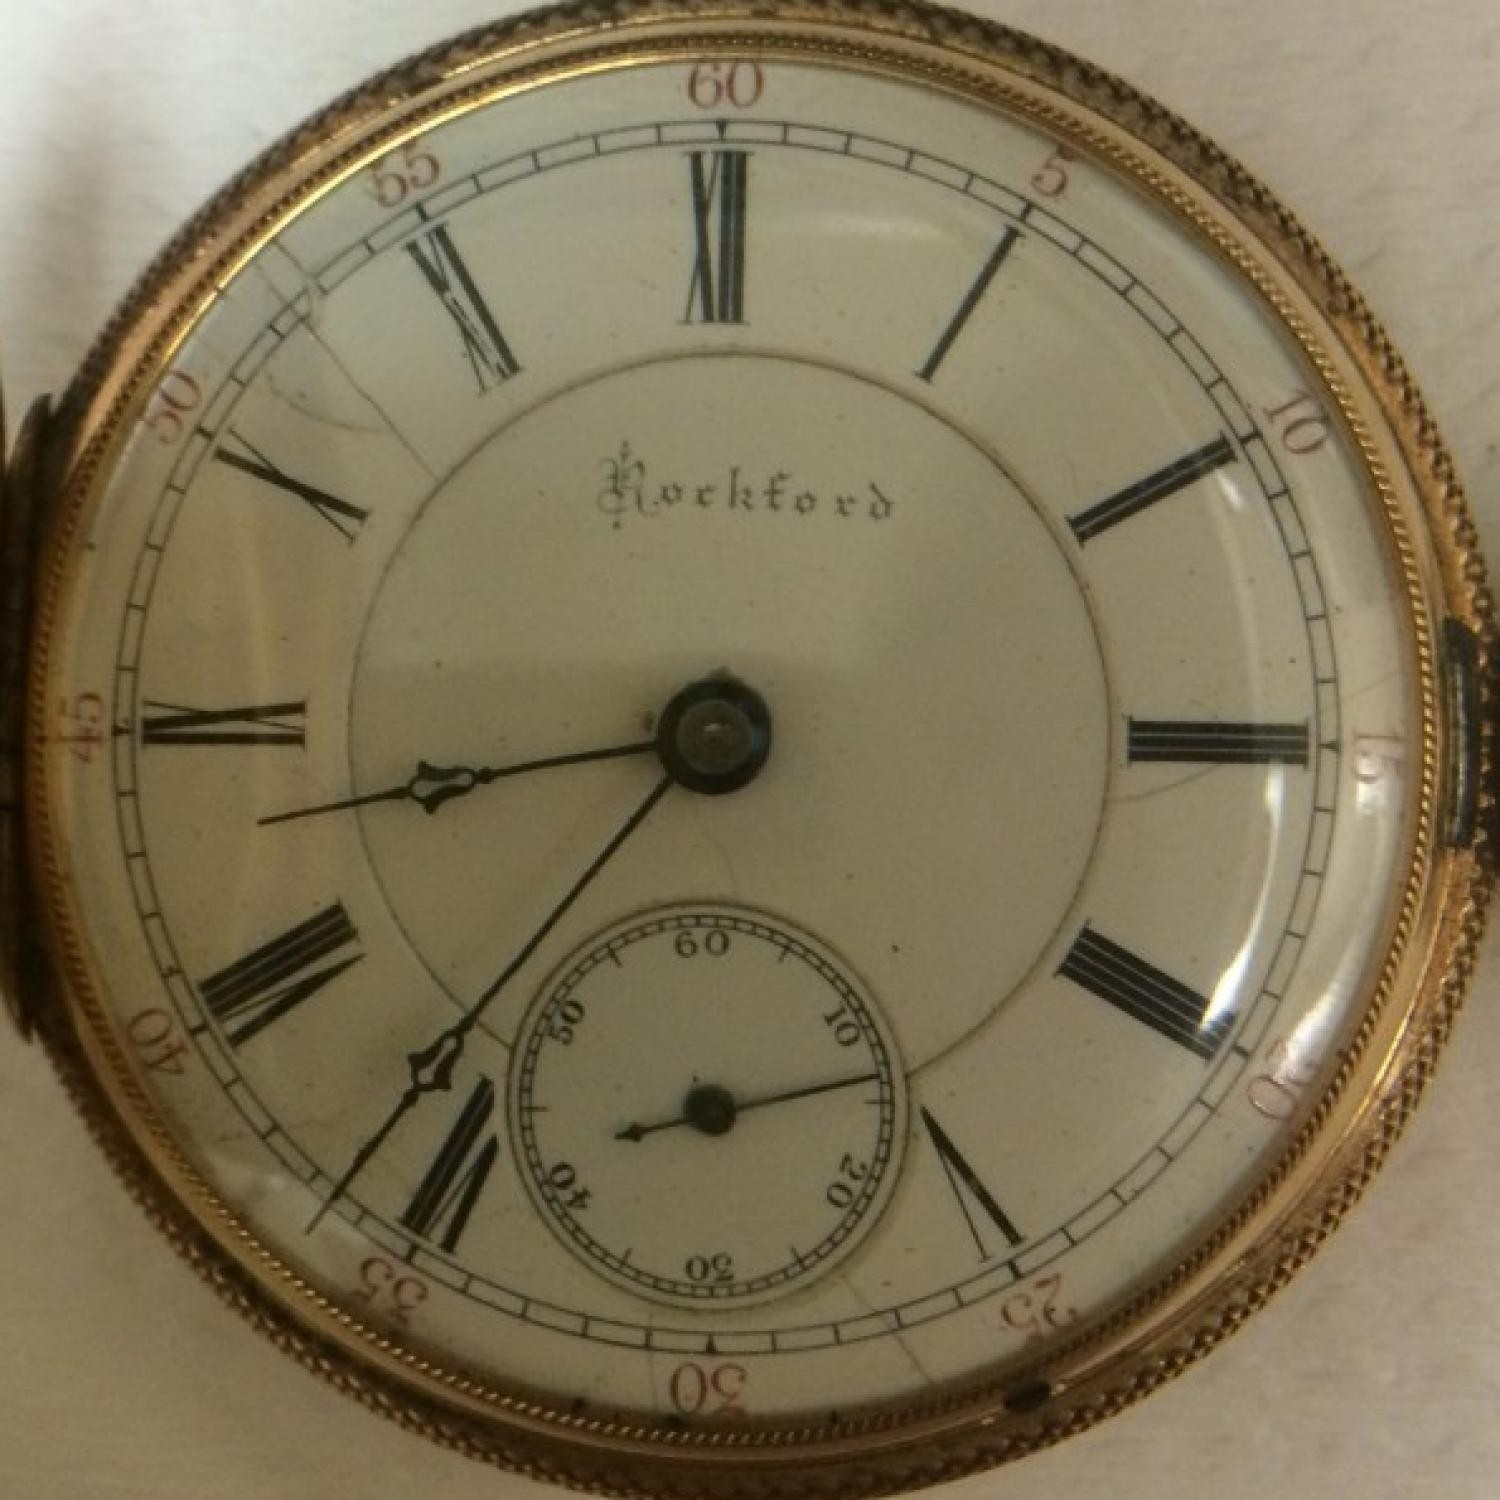 Image of Rockford 83 #267110 Dial